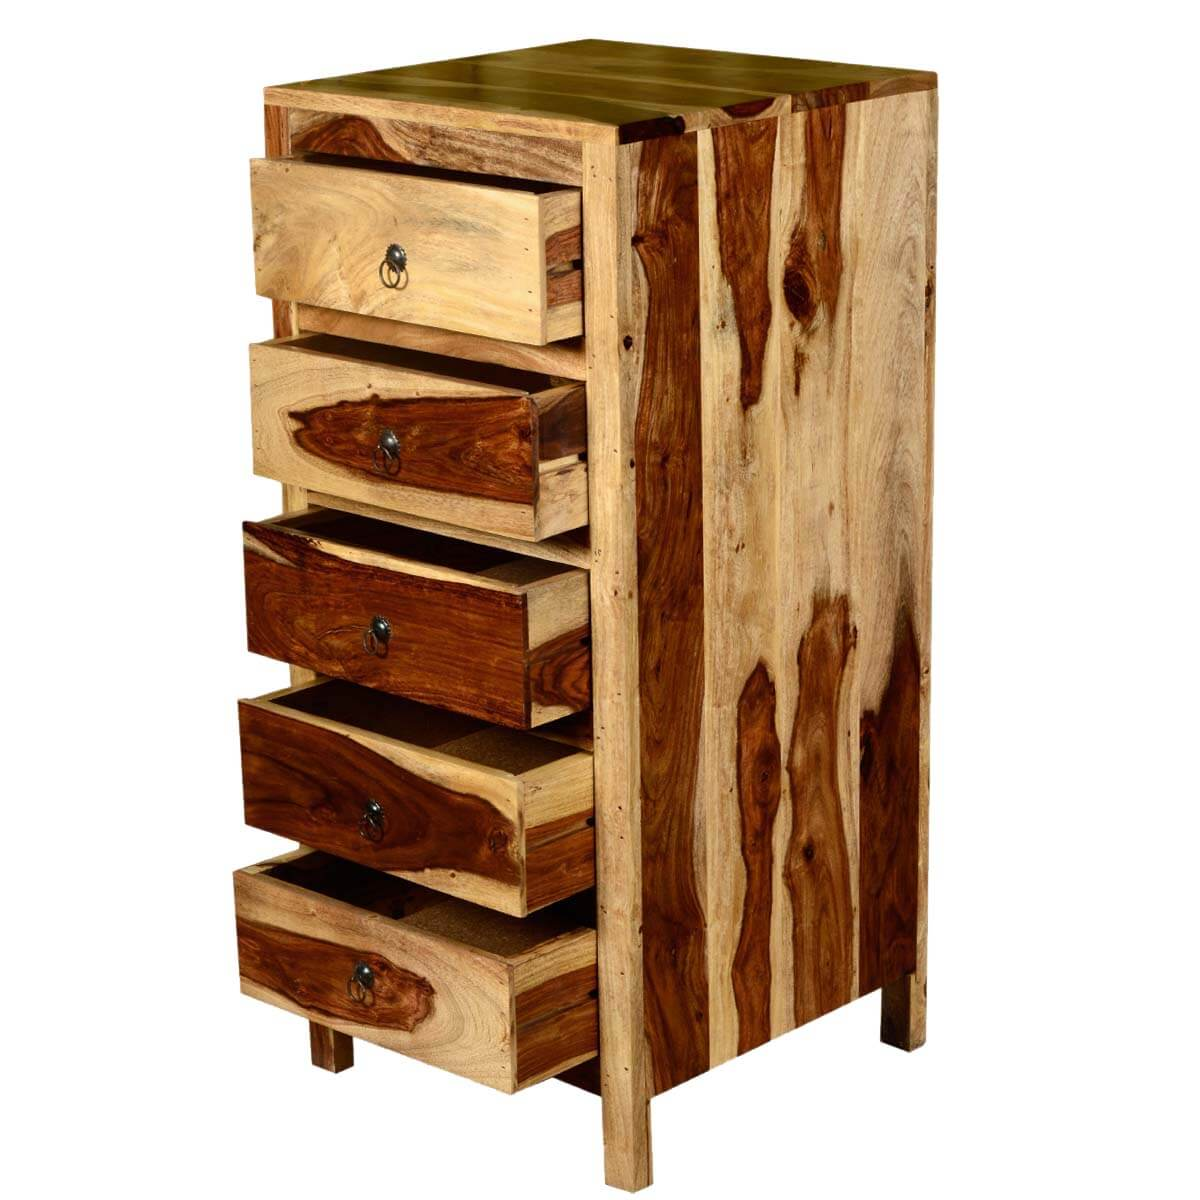 #381204  Fe Collection Dallas Ranch Solid Wood Contemporary Chest Of Drawers with 1200x1200 px of Best Chest Of Drawers Solid Wood 12001200 image @ avoidforclosure.info